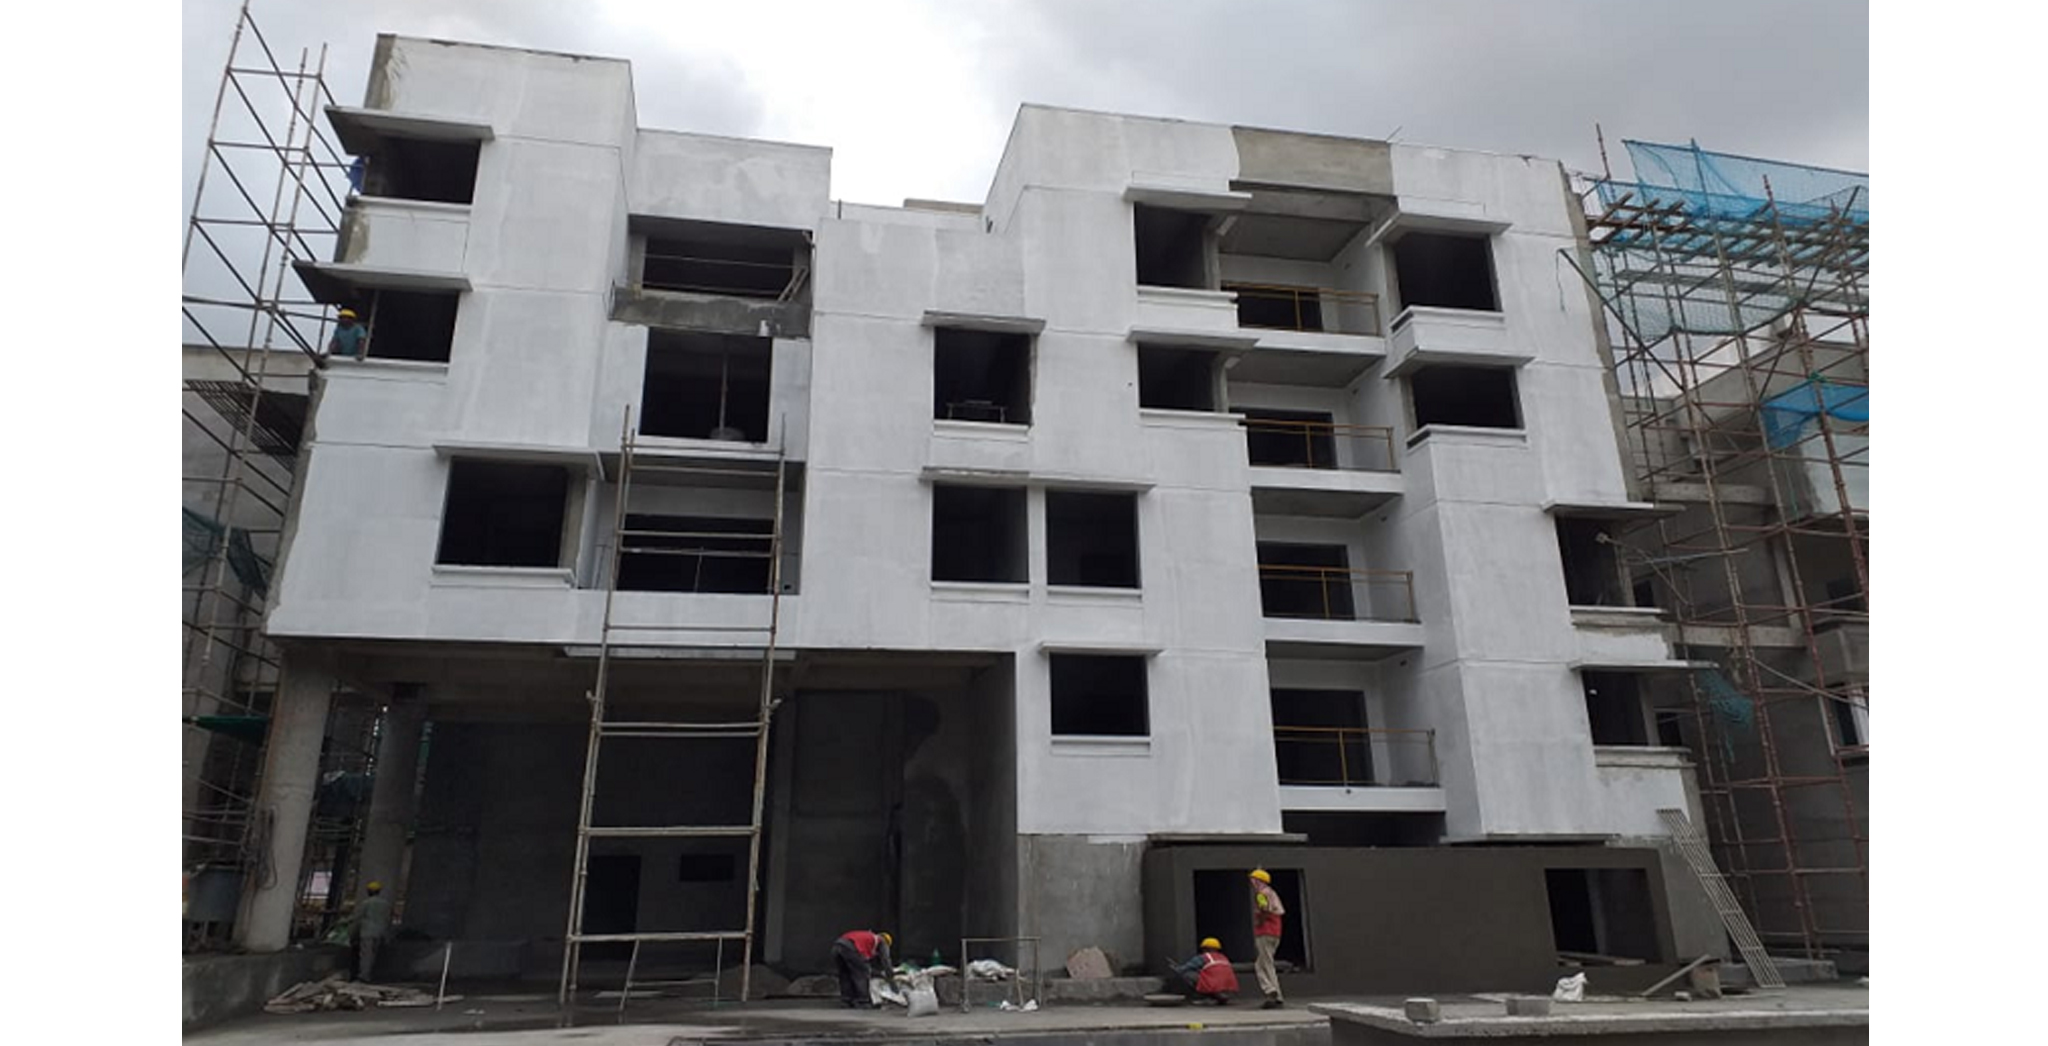 Aug 2021 - Podium Side View: Block D - External plastering completed, painting works in progress